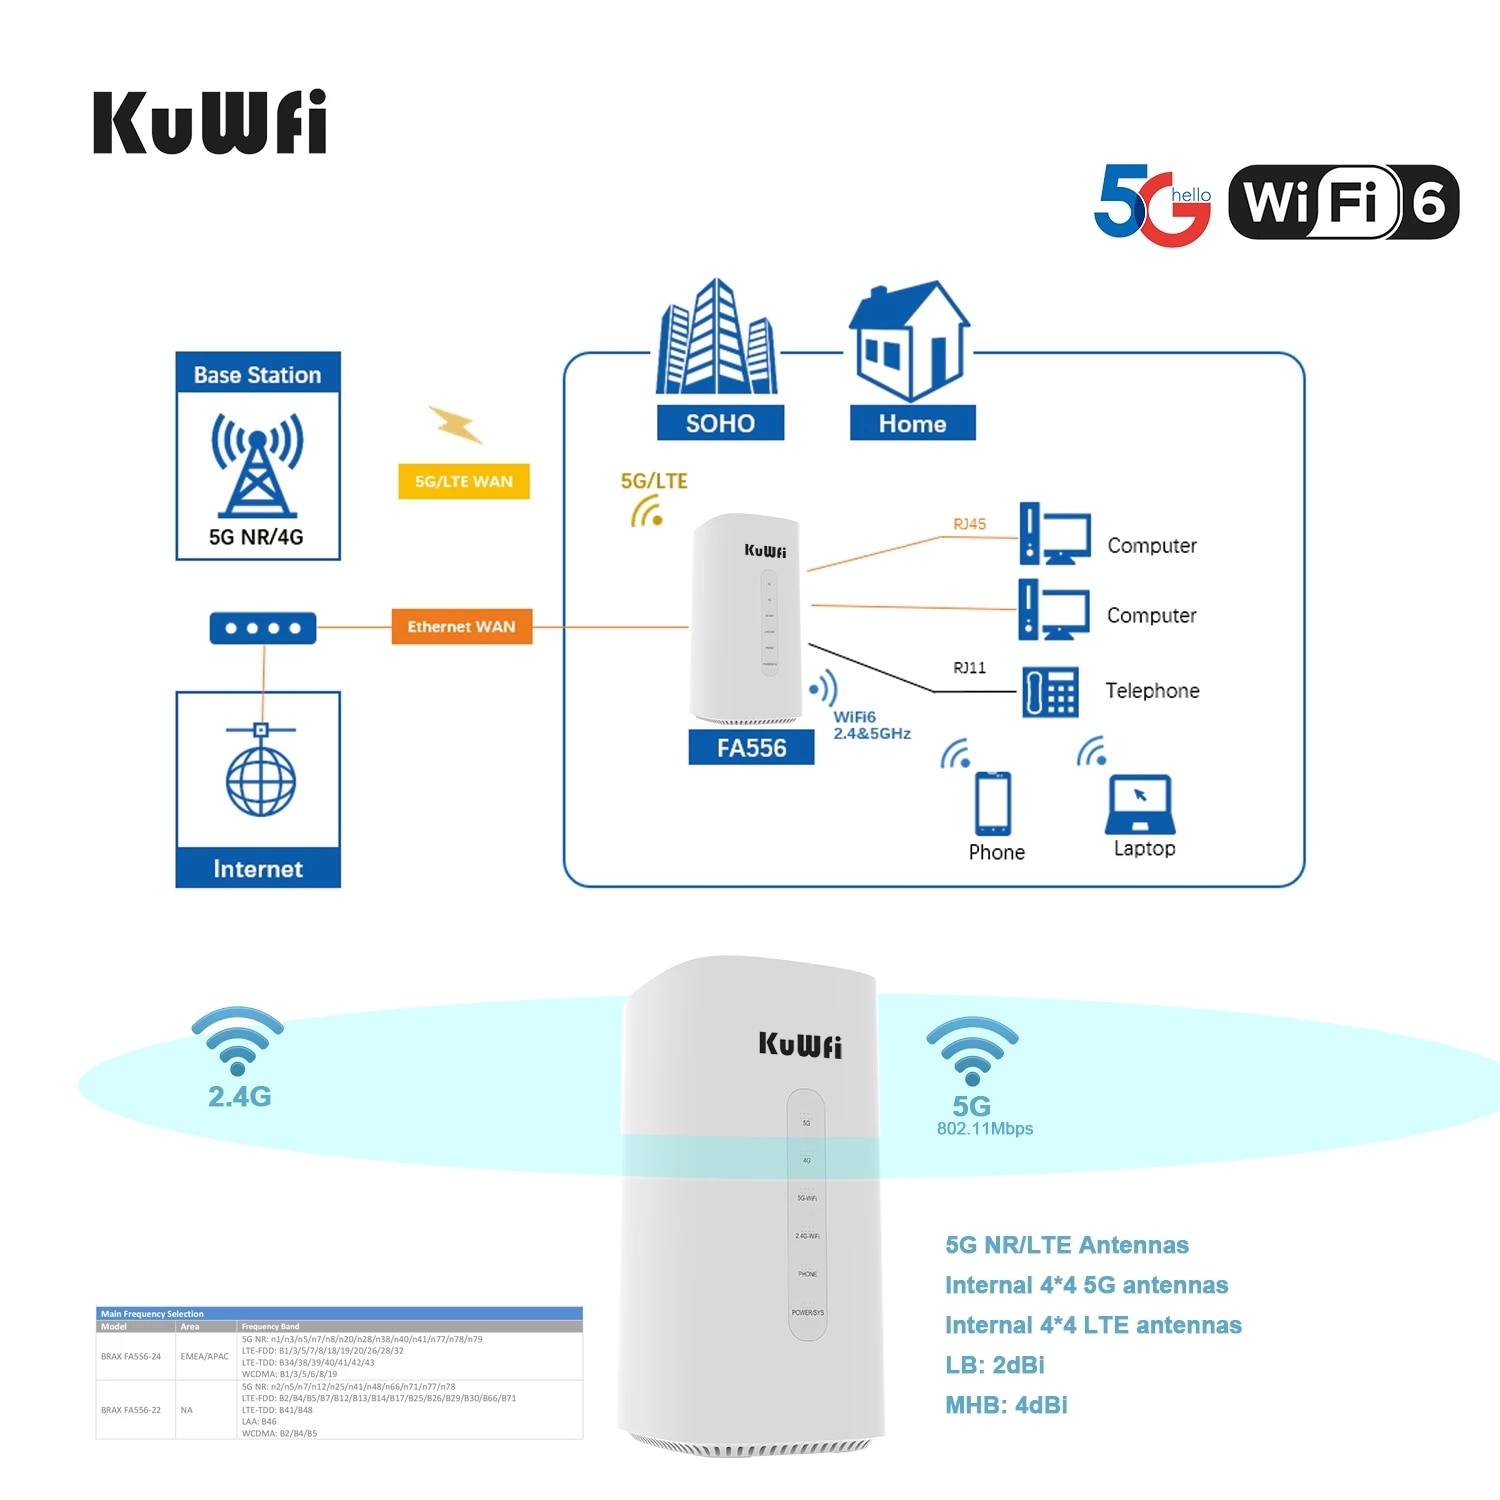 KuWFi 5G Wireless Router CPE& LTE-A Coverage 802.11ax 2.5Gbps  Unlocked High Rate Gigabit Wi-Fi 6  4G WiFi 5G NR networkRouter enlarge